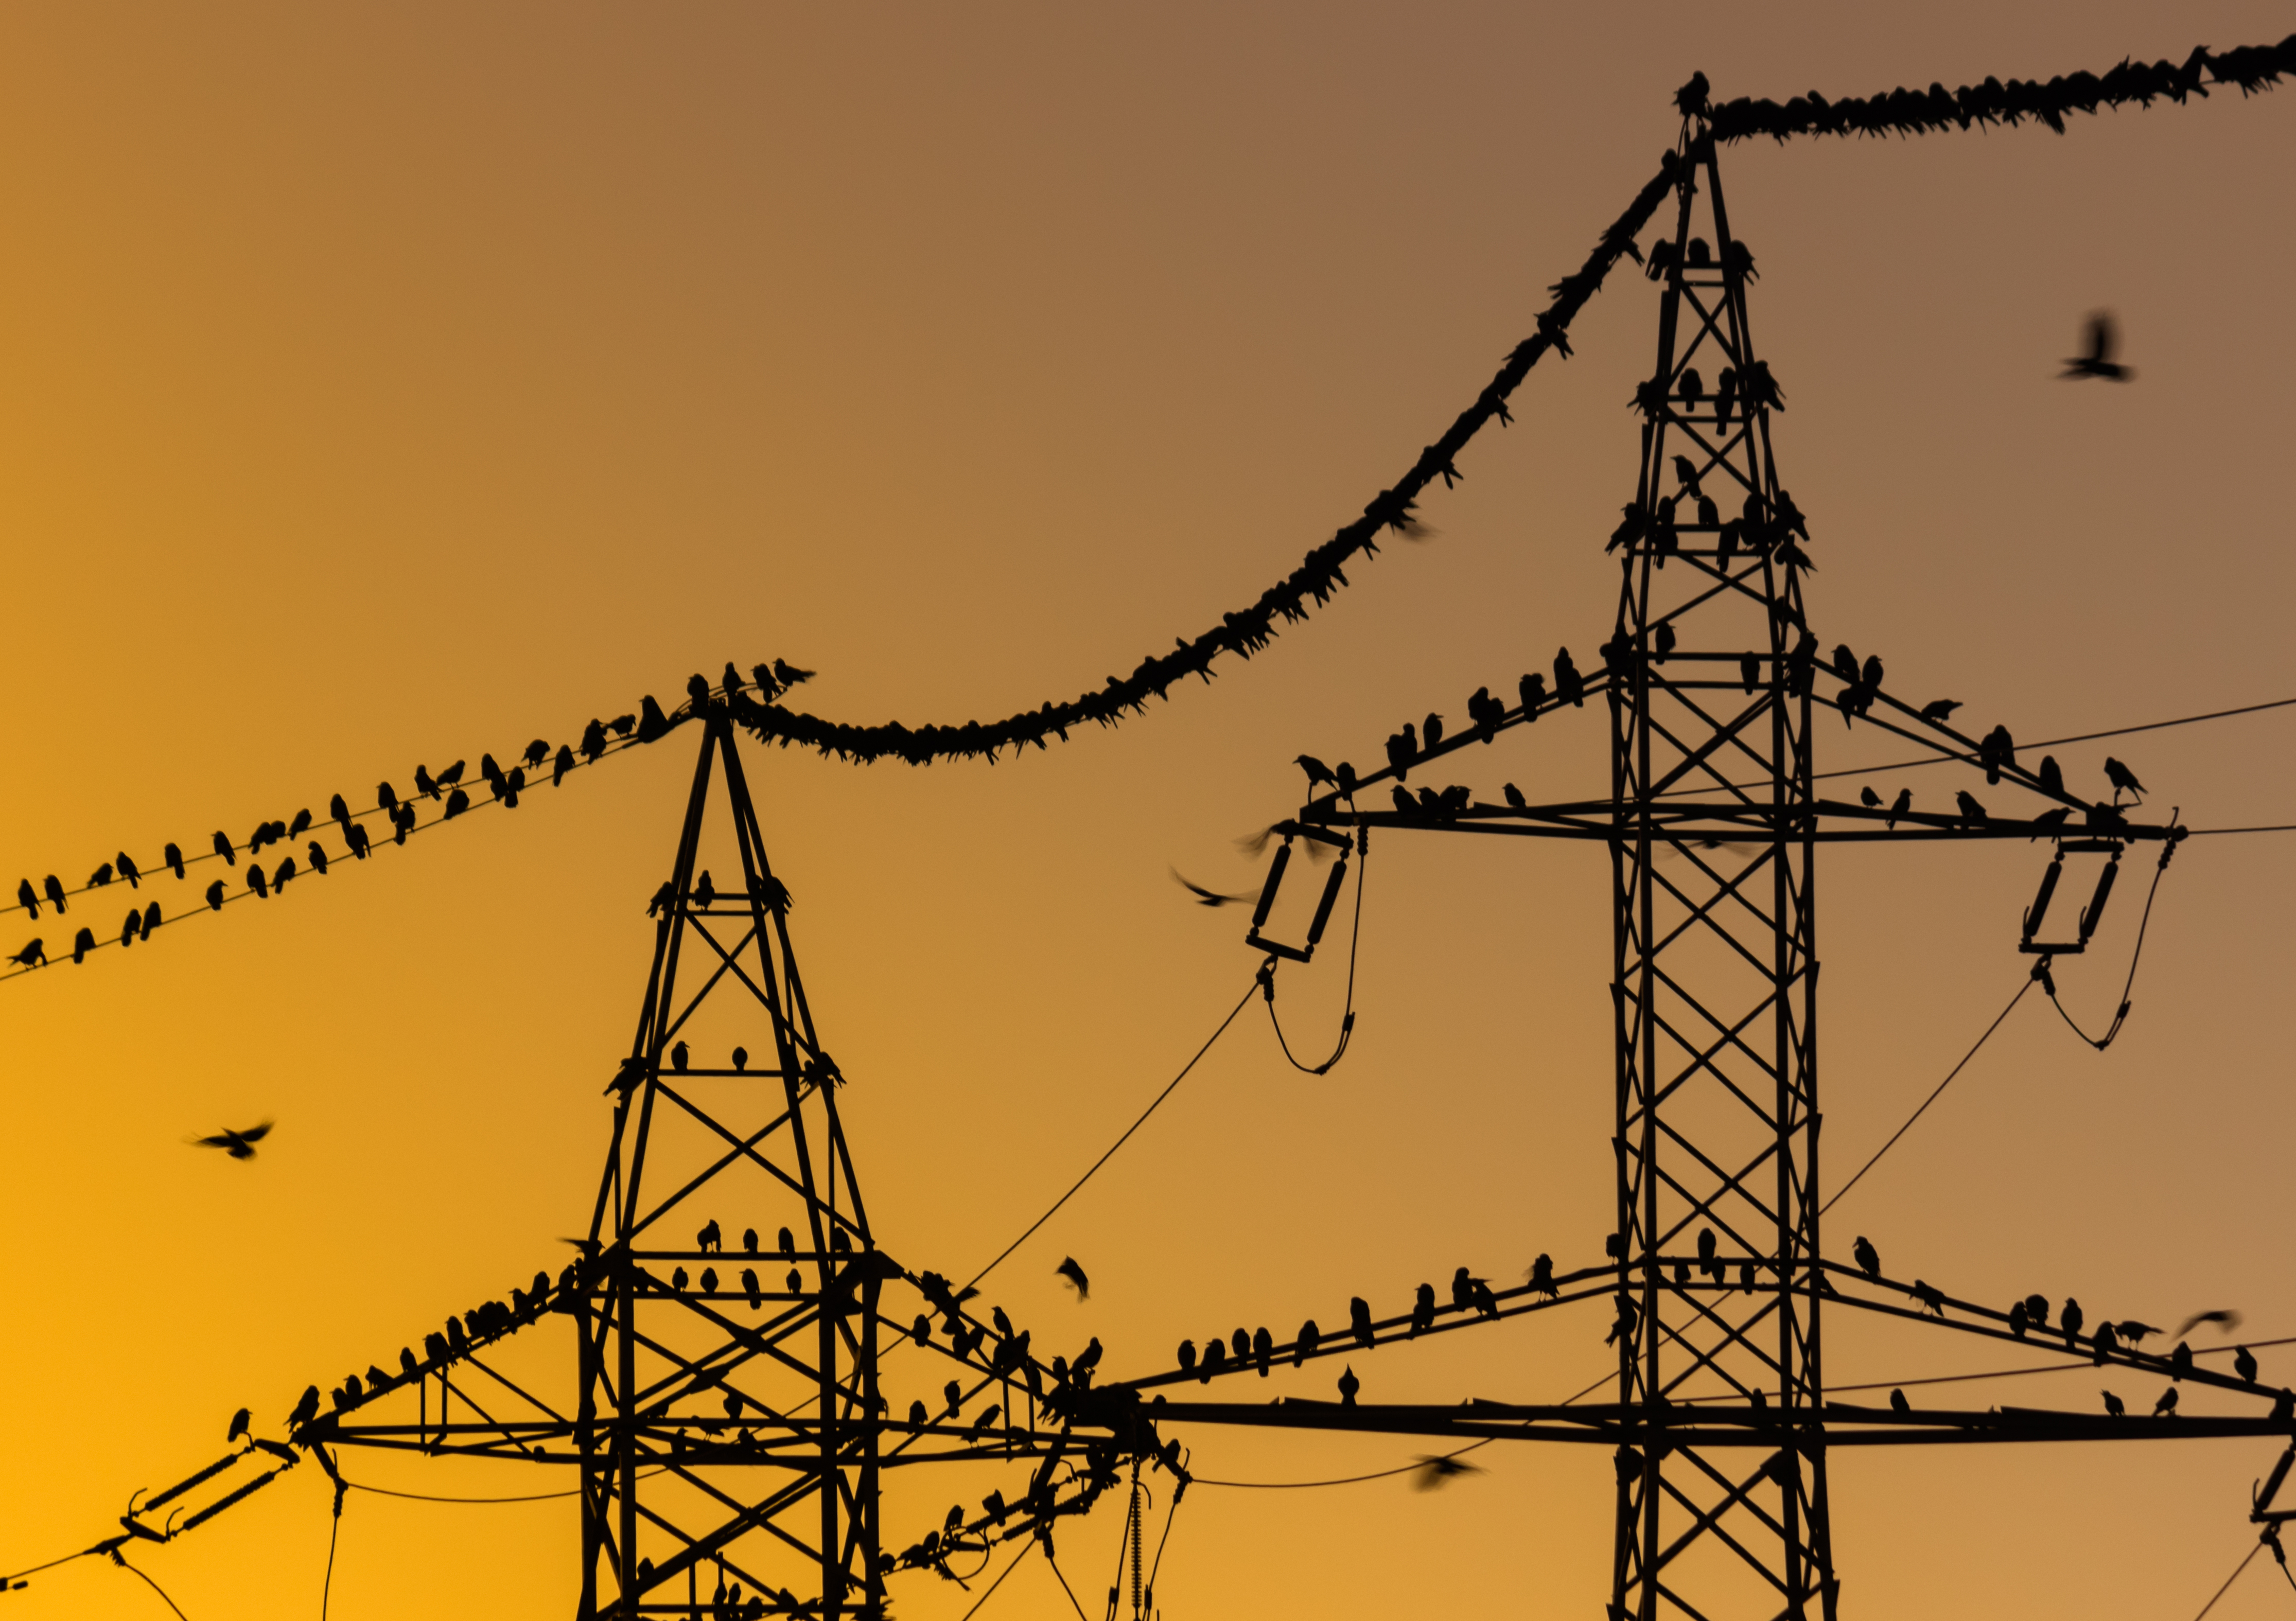 Image of birds on a power tower